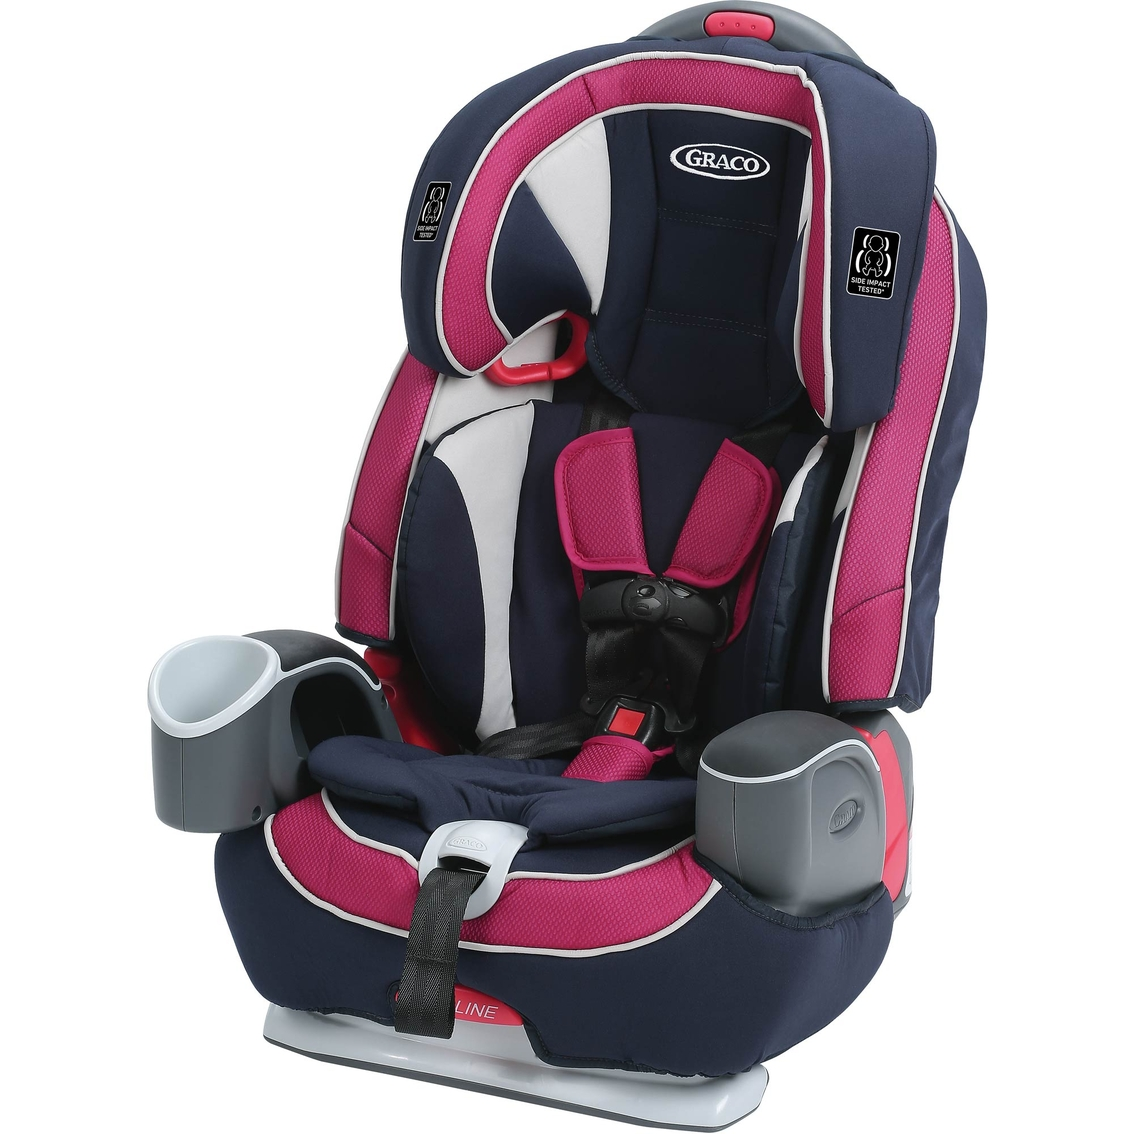 Graco Nautilus 65 LX 3 In 1 Booster Seat